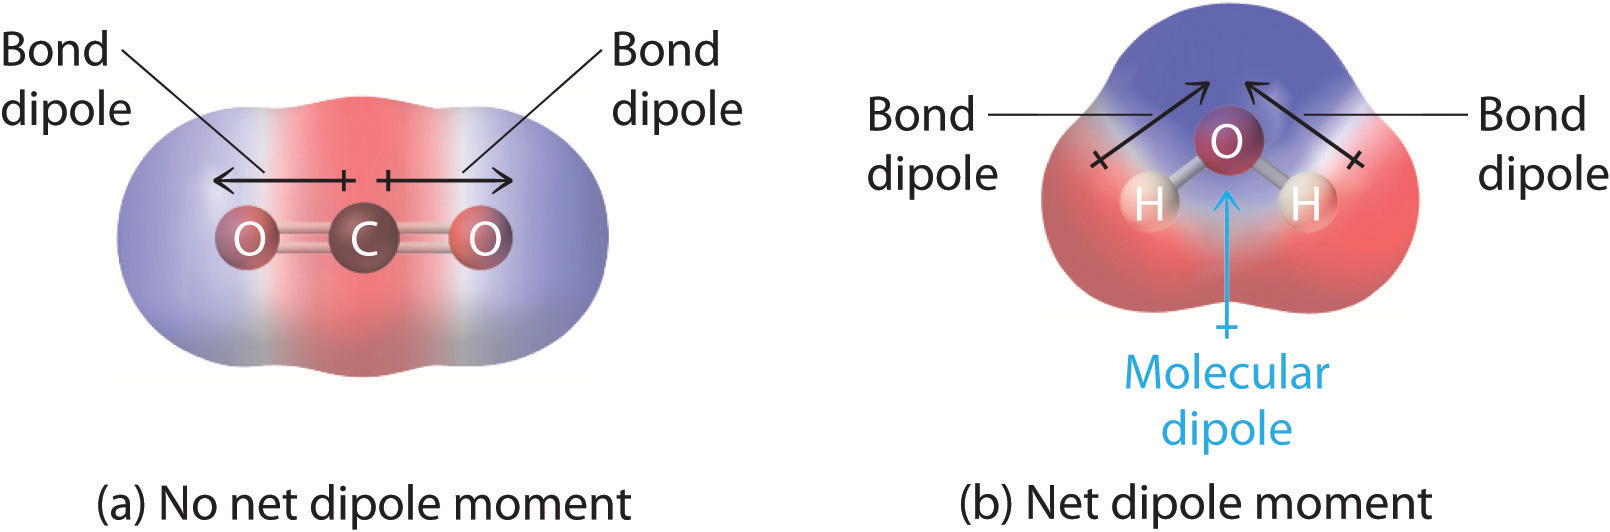 General chemistry principles patterns and applications 10 molecular dipole moments pooptronica